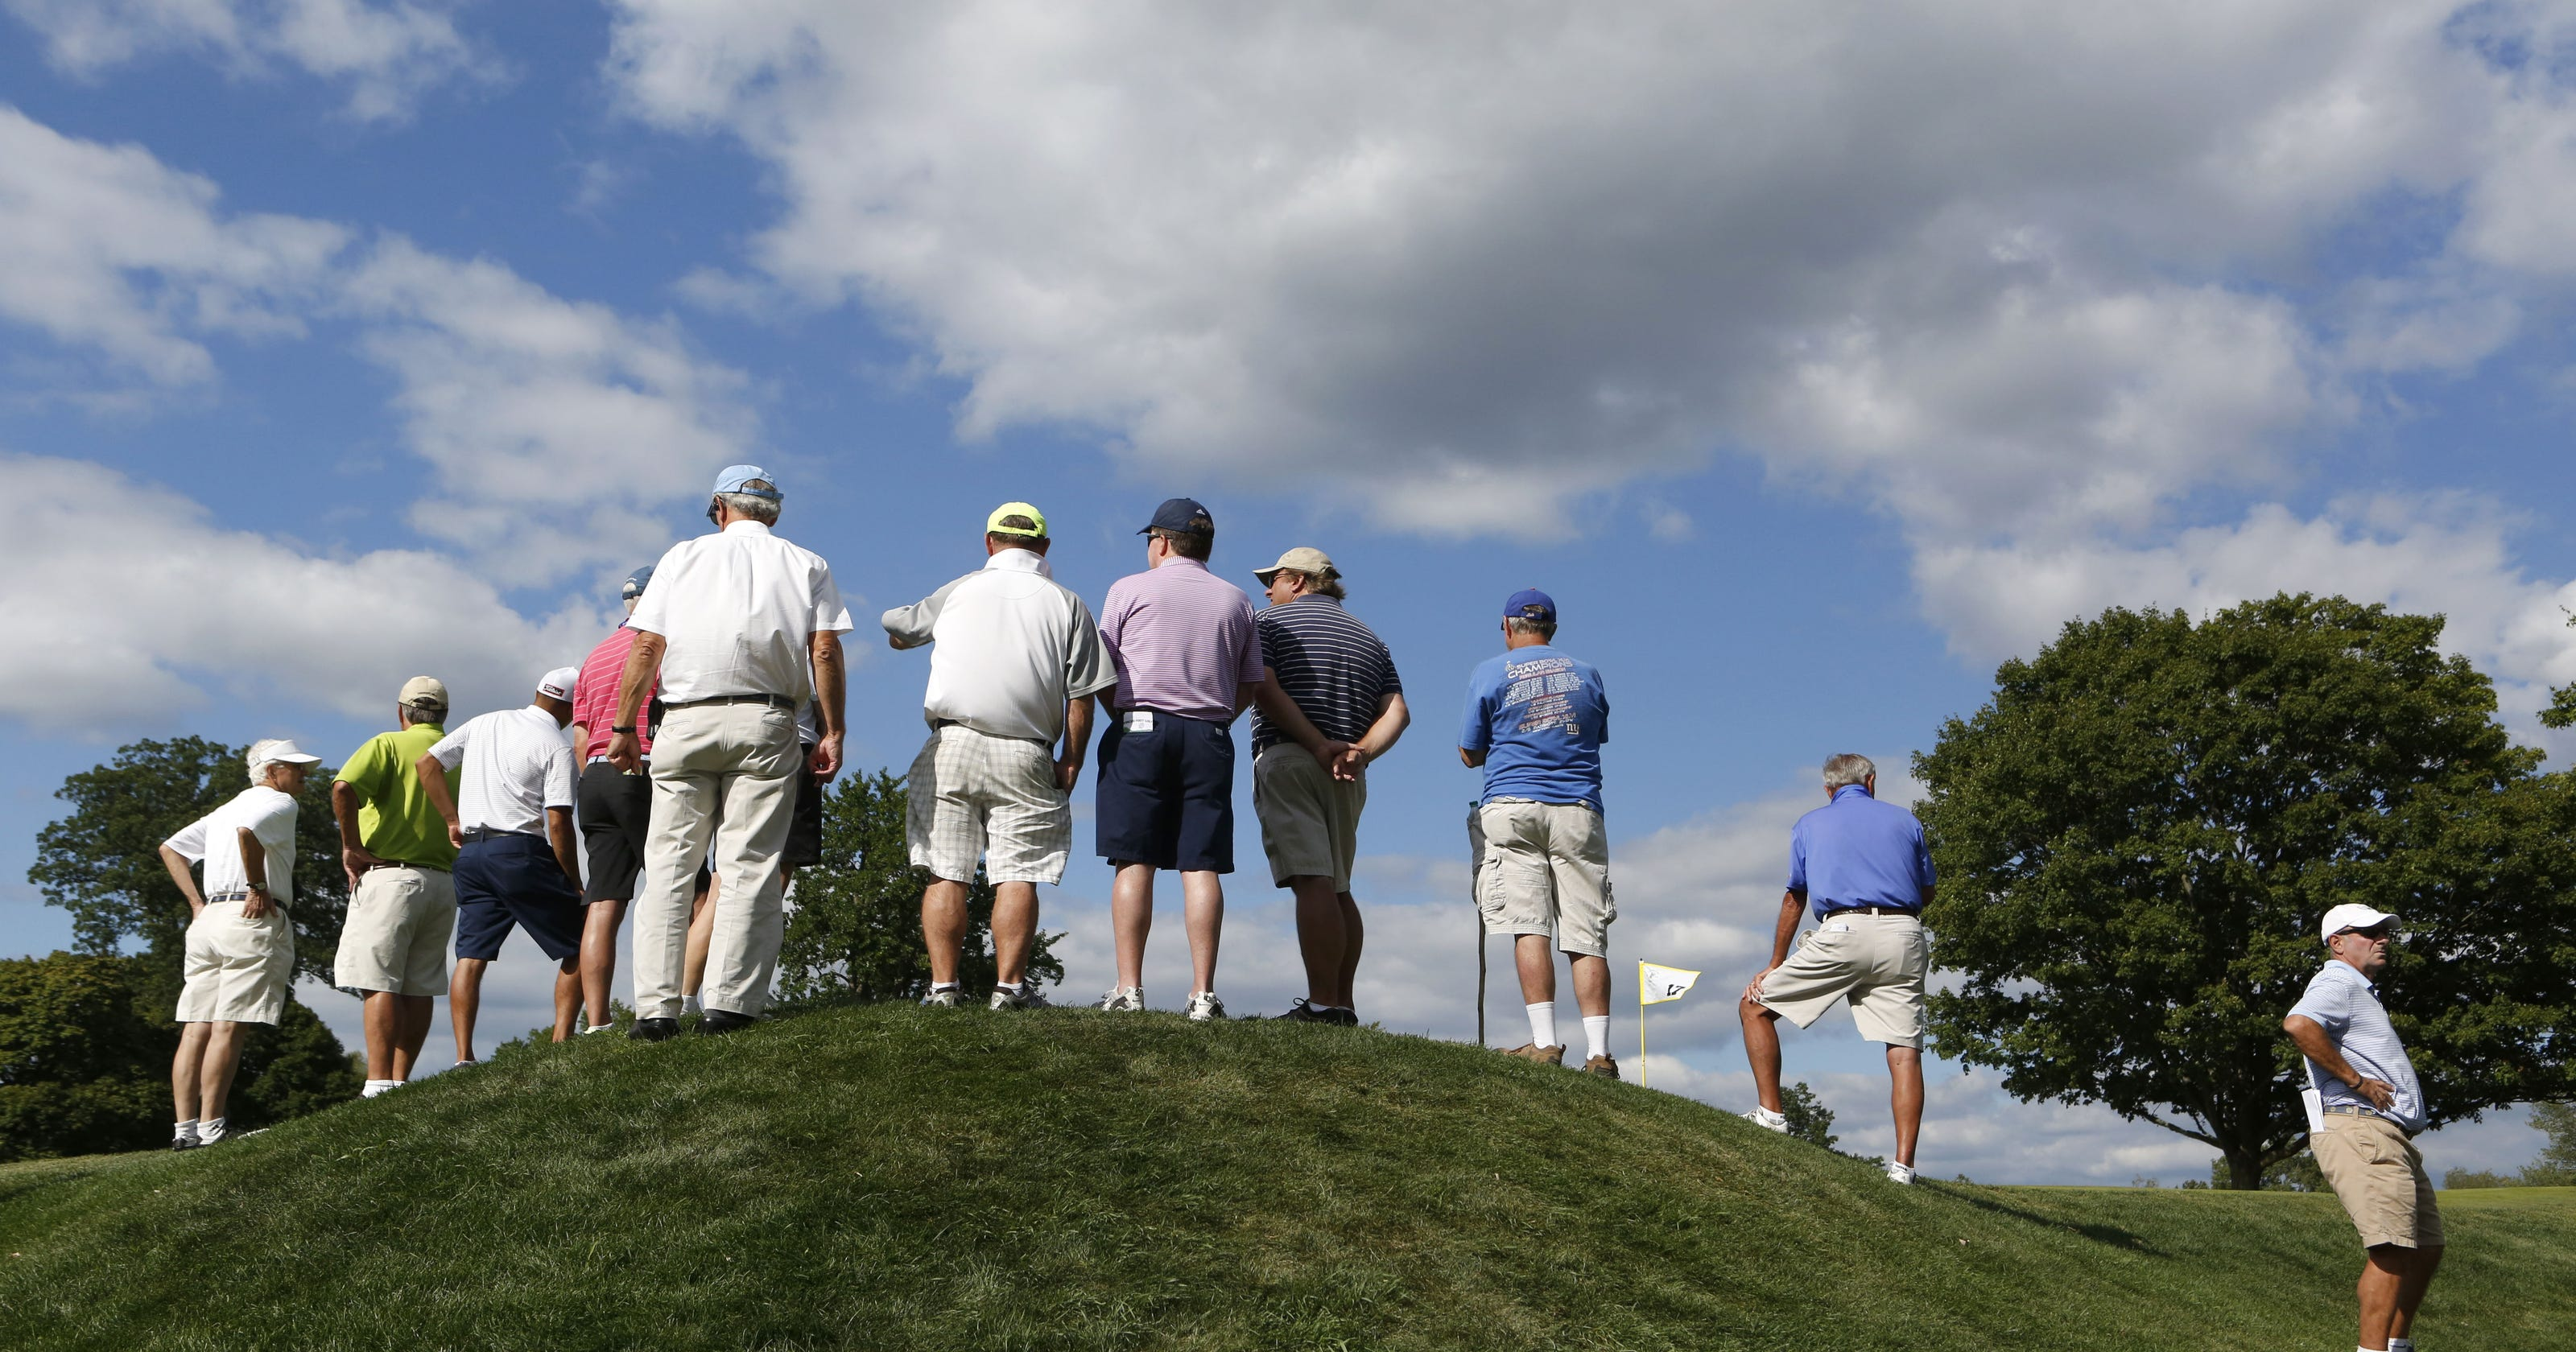 Best Of Westchester 2020 U.S. Open 2020: Tickets on sale for championship at Winged Foot